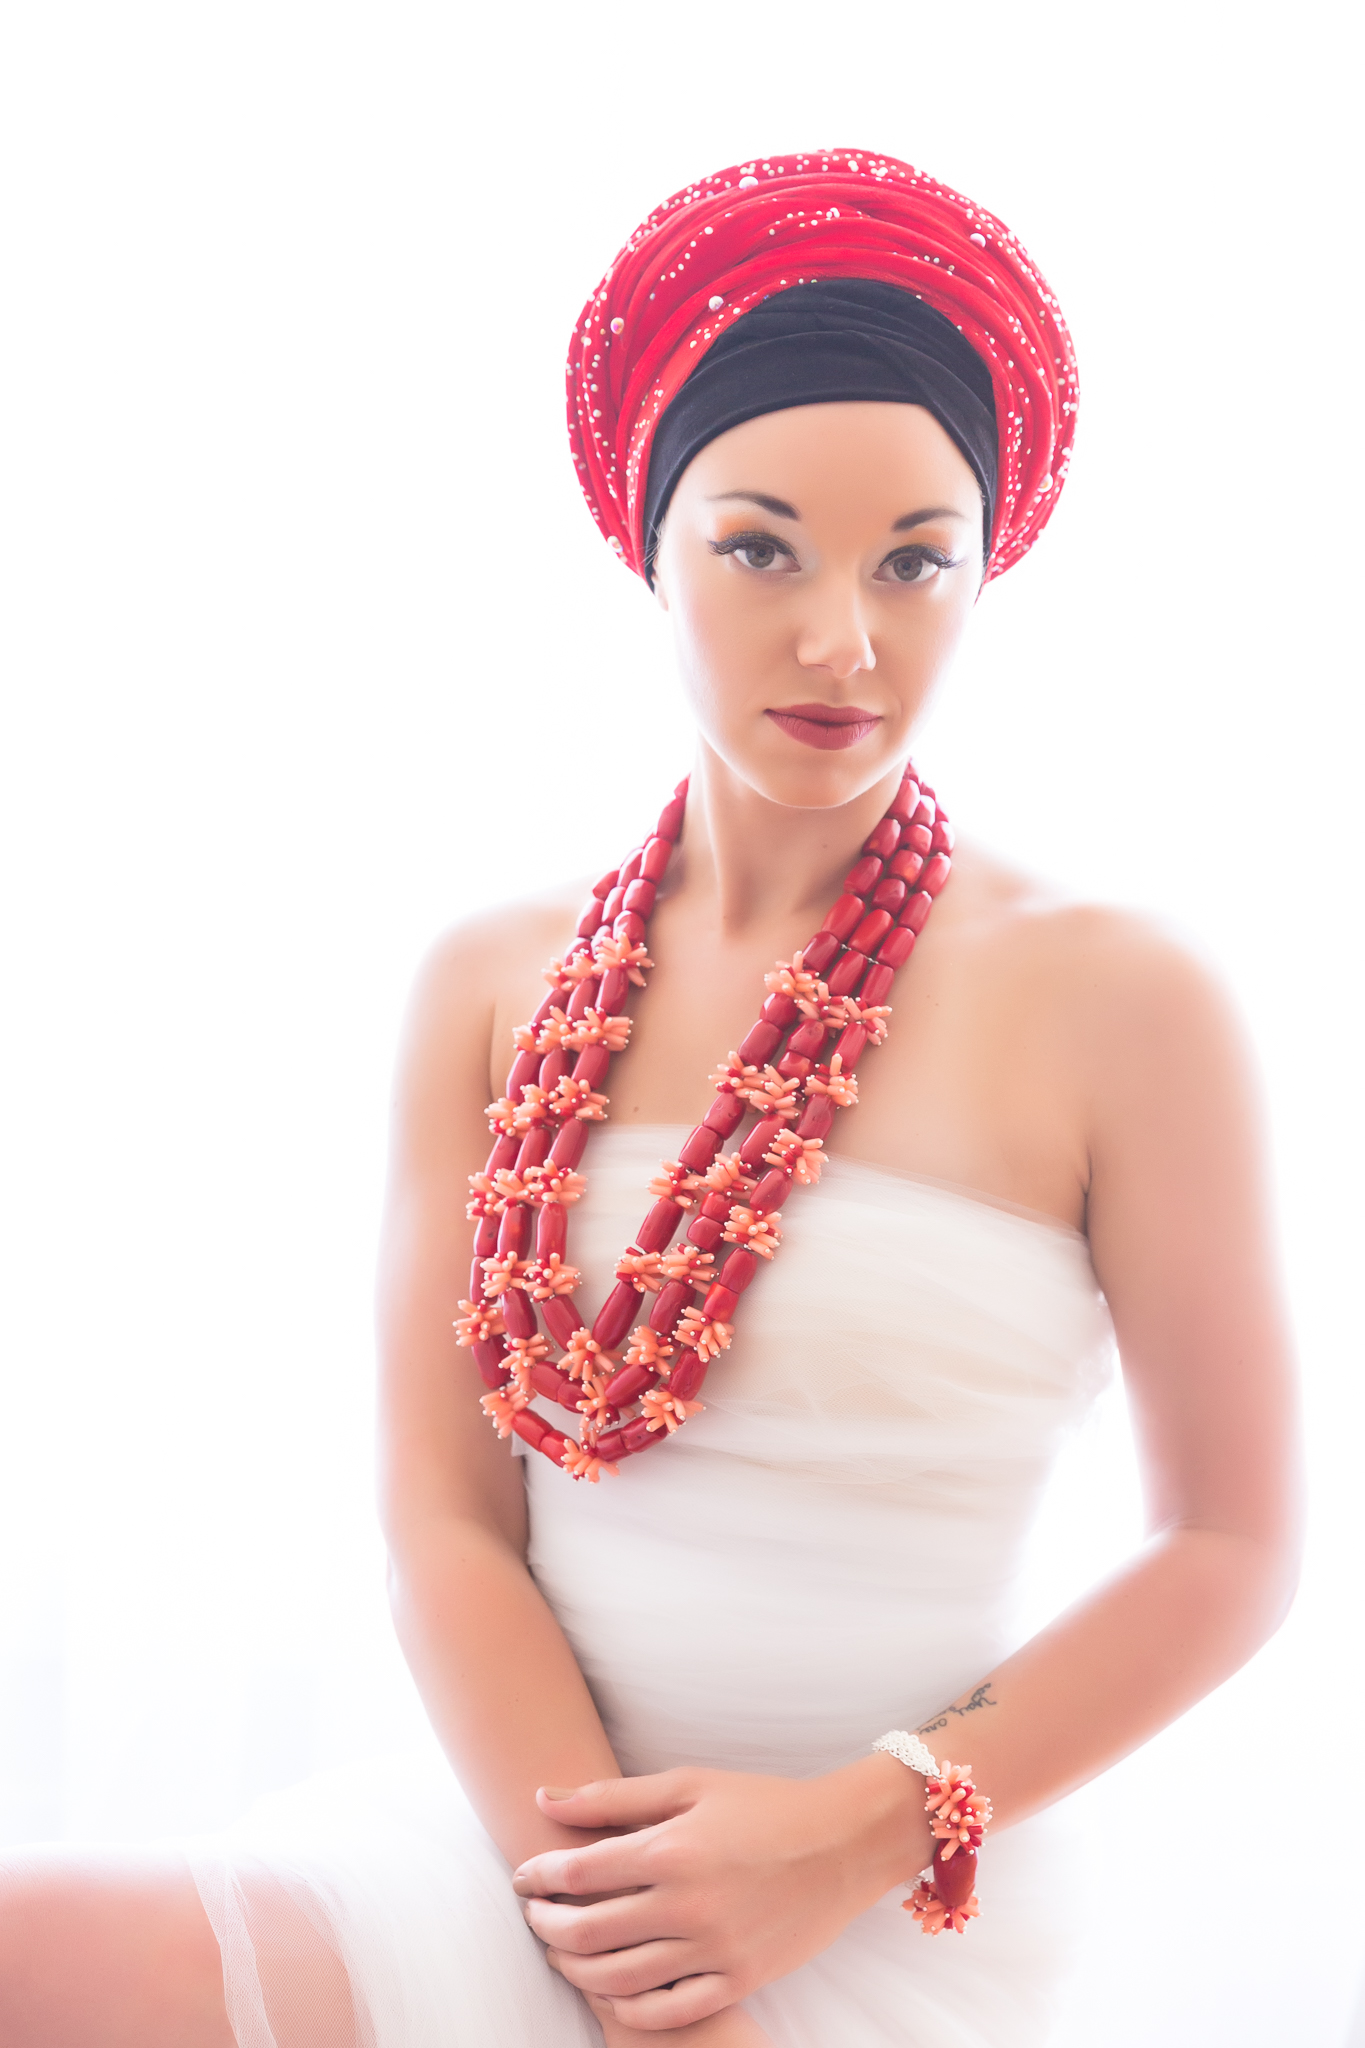 photoshoot-editorial-beautiful-nigerian-outfit-red-coral-jewelry.jpg